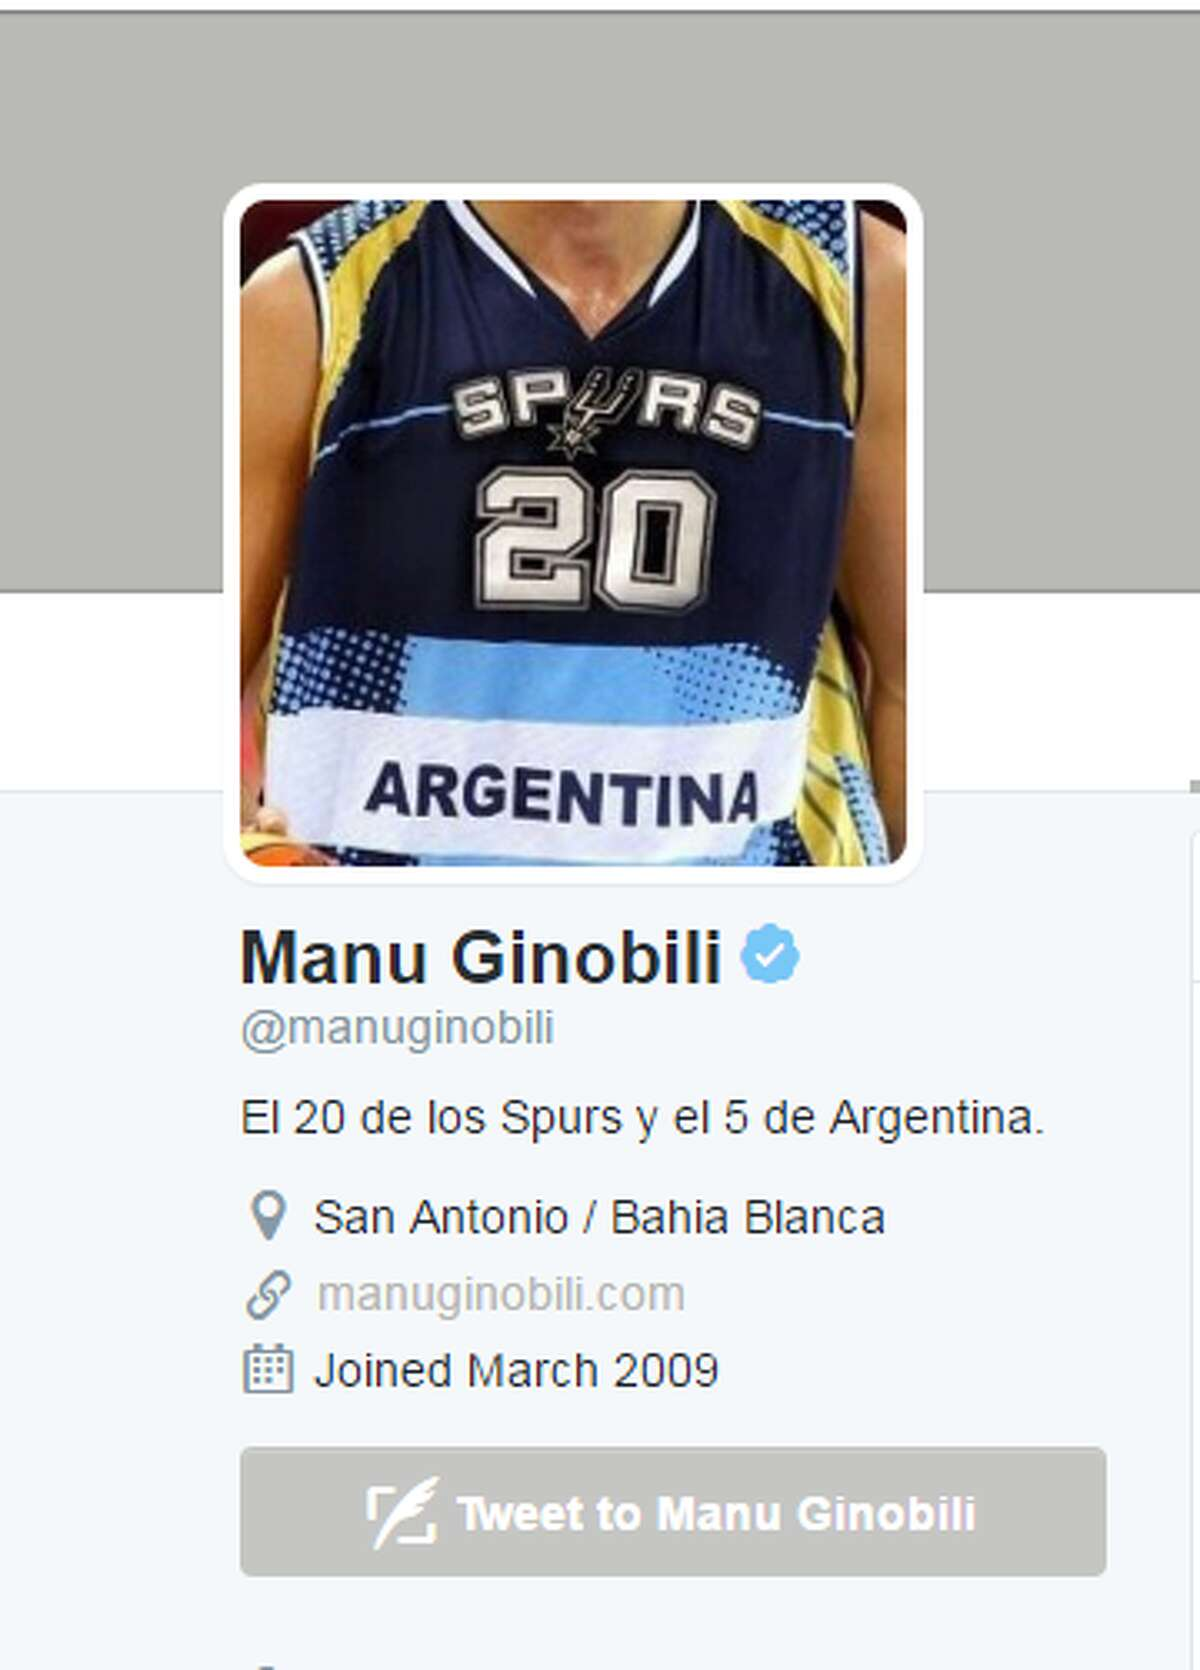 Manu Ginobili, Argentina Basketball Known for his storied career with the San Antonio Spurs in the NBA, Ginobili will be going to his third Olympic games with the Argentine national team. Most of Ginobili's tweets are in Spanish, and so is his blog. The basketball star came back from a three-month hiatus in June and looks to be tweeting more than ever.